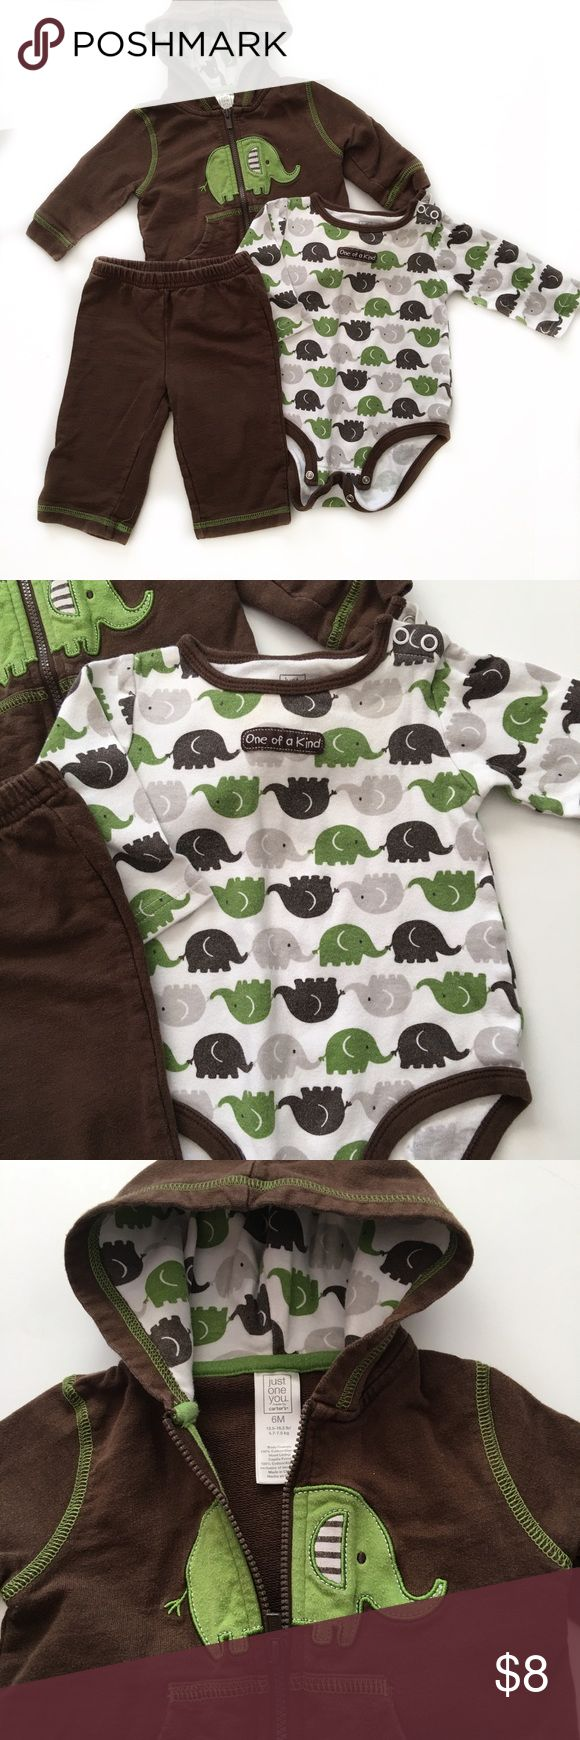 🐘Adorable 3pc Set🐘 3 of elephant set by Just One You By Carter's. Hoodie, sweatpants, and matching onesie. Carter's Matching Sets